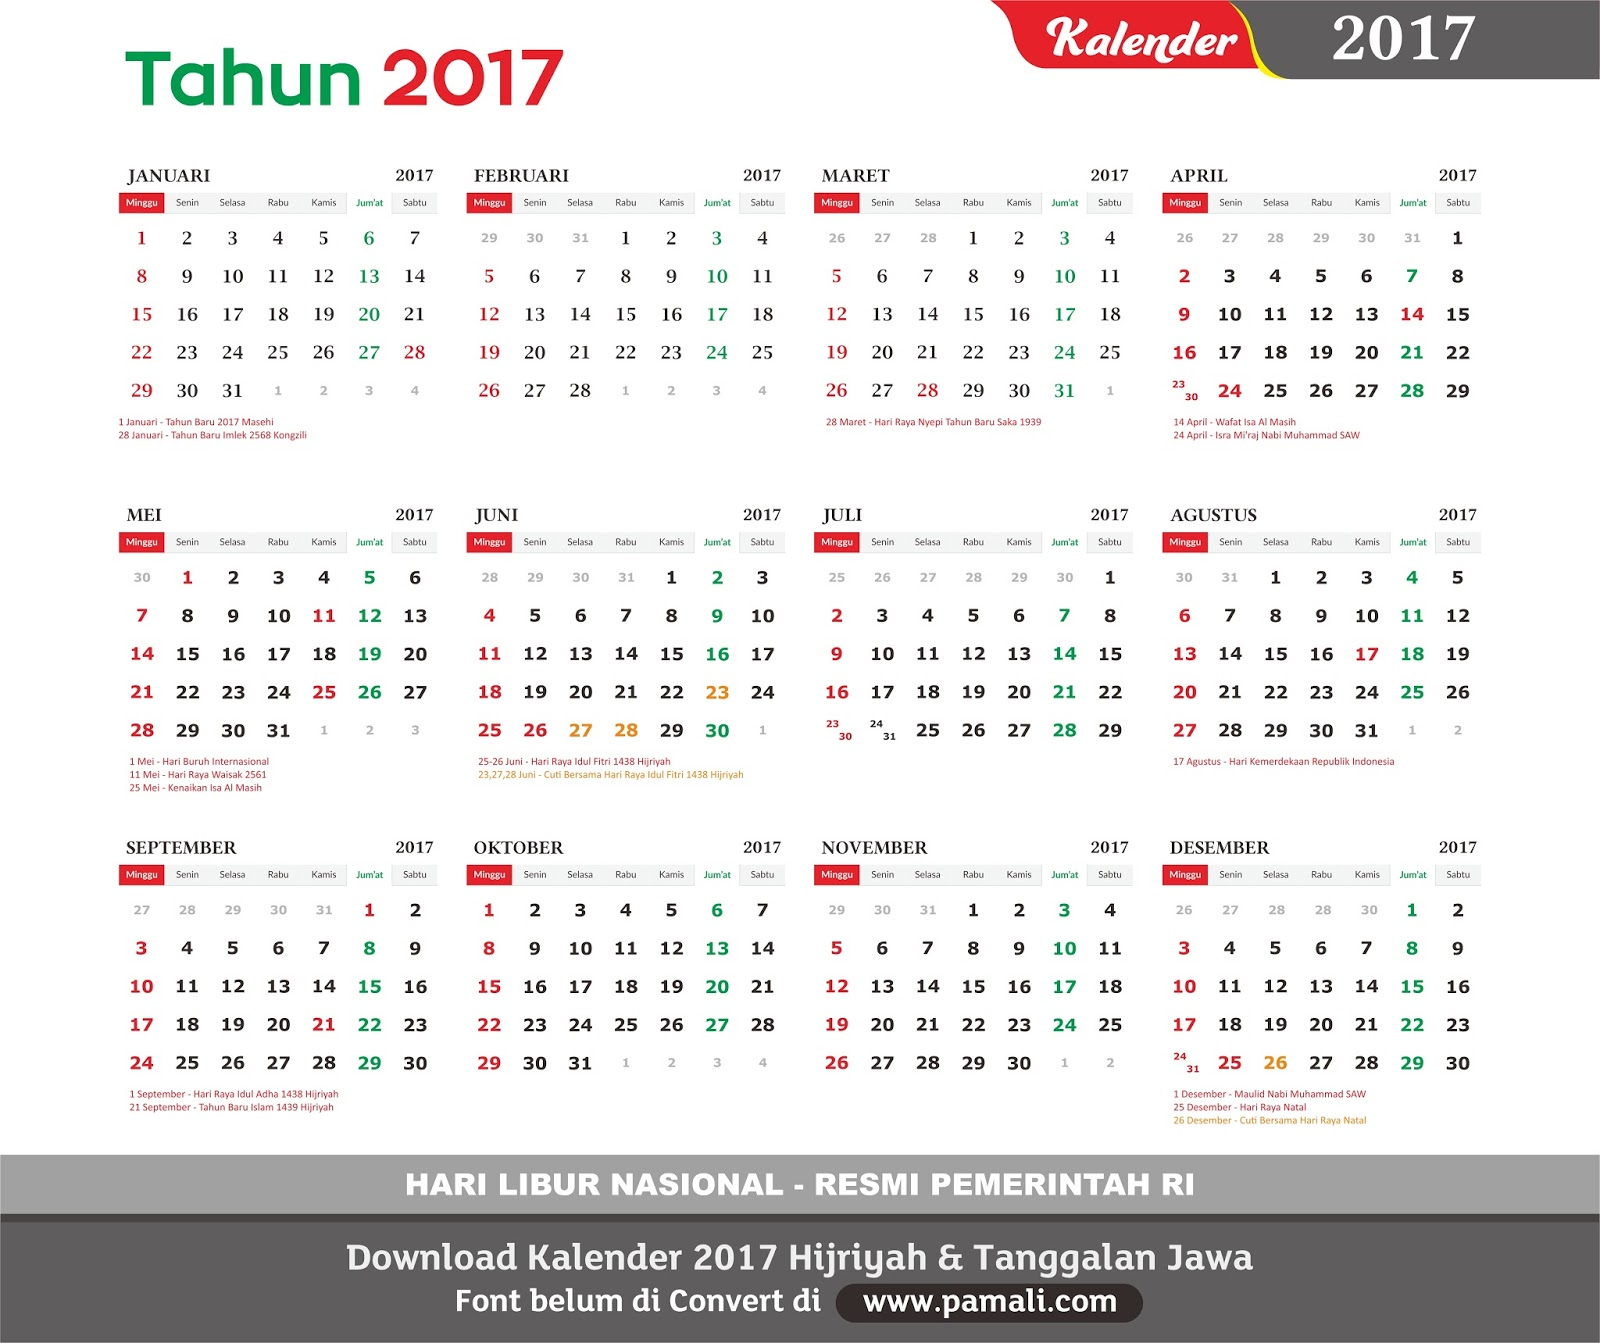 Download Kalender 2017 Cdr